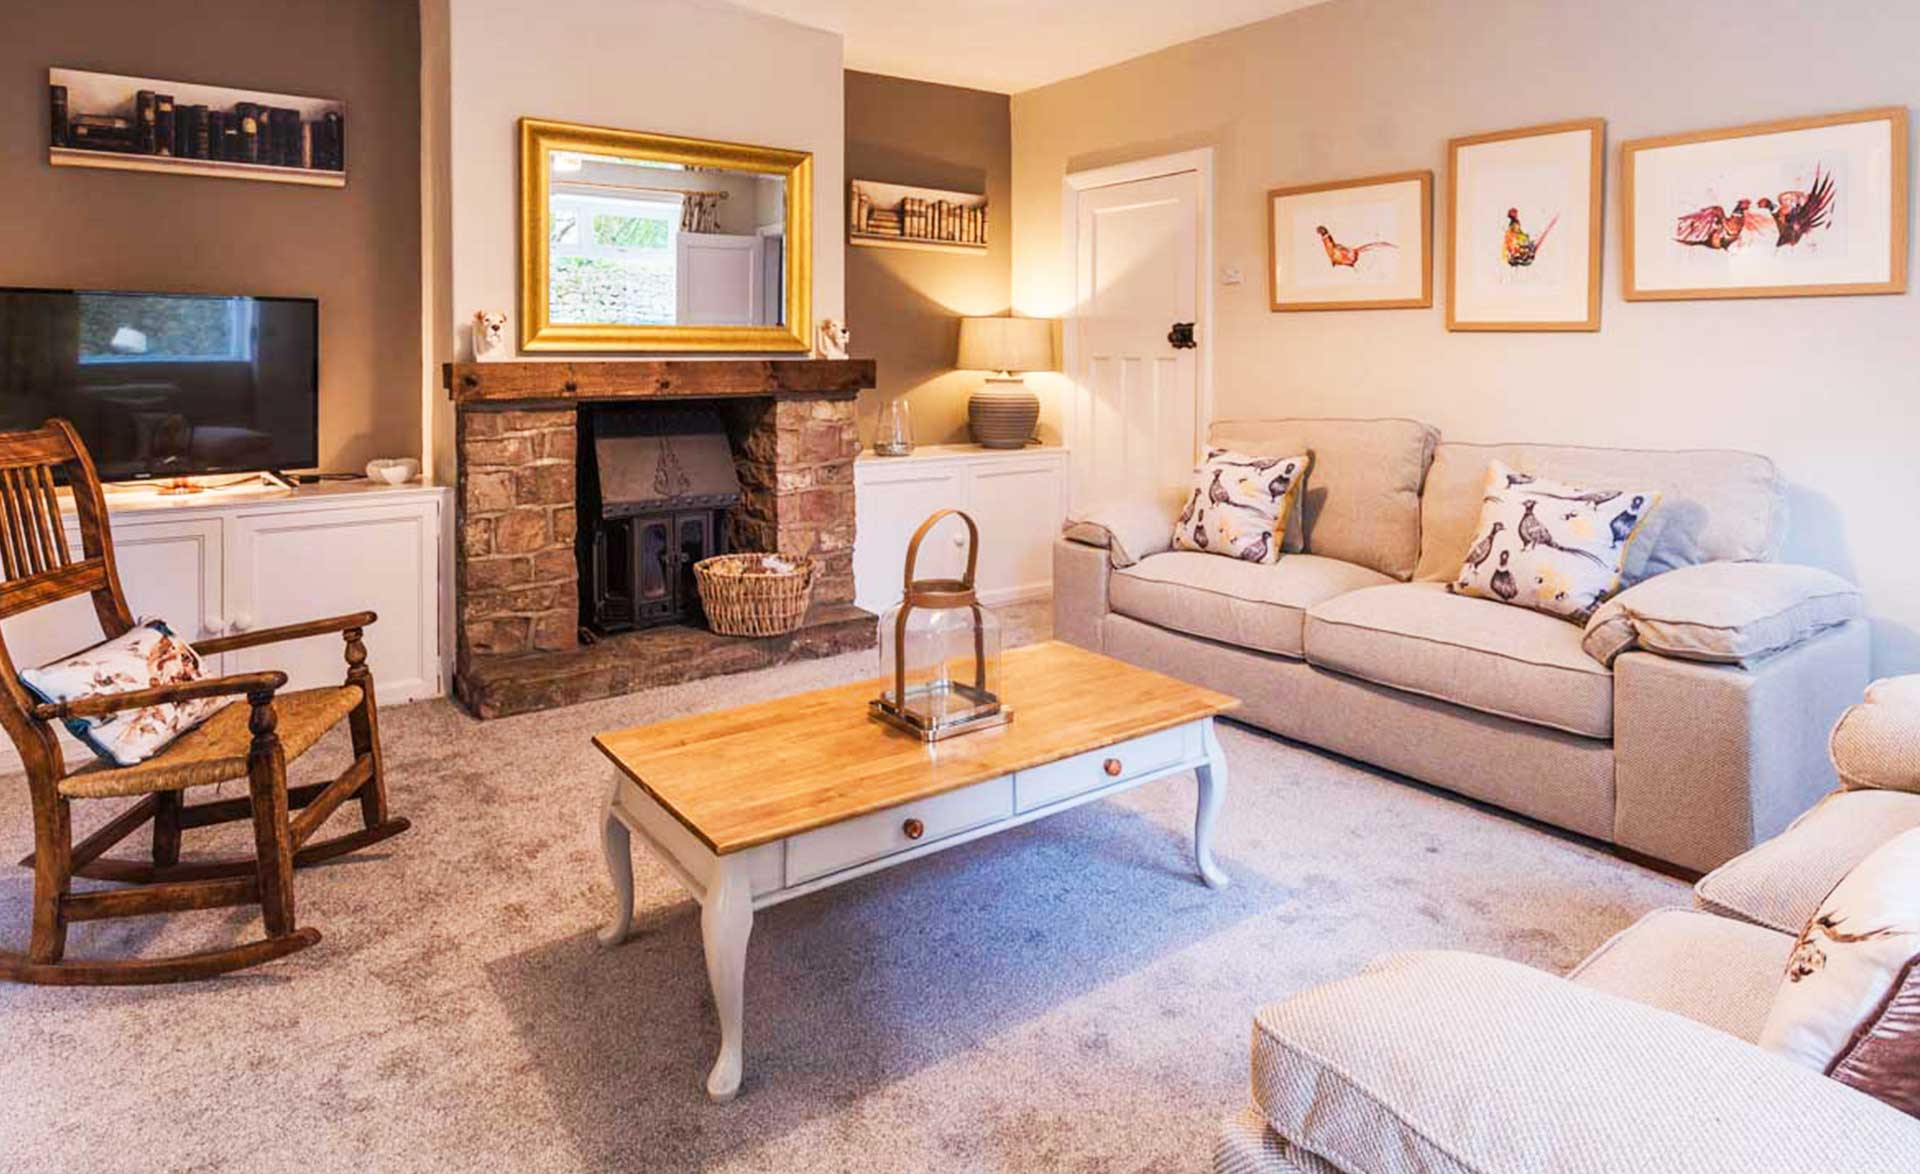 The holiday cottage in Waddington neat Clitheroe image